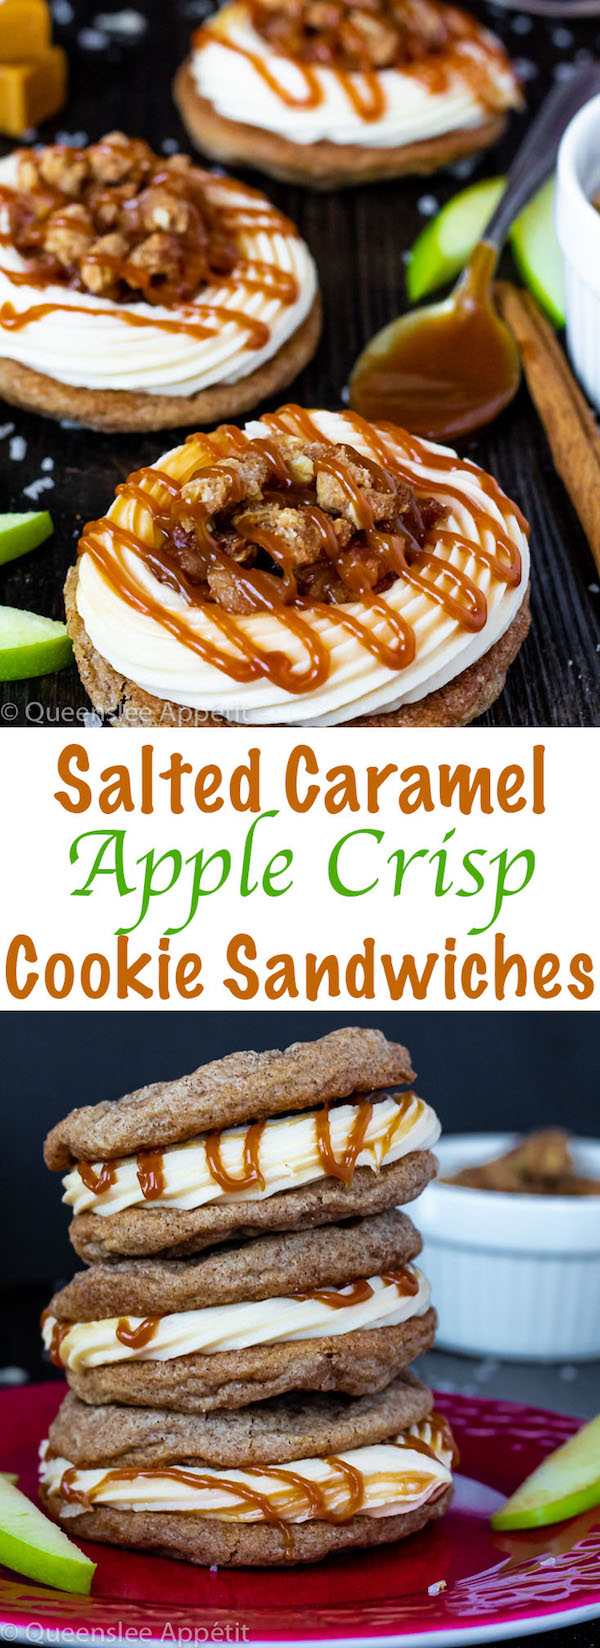 These Salted Caramel Apple Crisp Cookie Sandwiches are filled with a smooth and creamy salted caramel cream cheese frosting, homemade apple filling, crunchy oat crumble and drizzled with salted caramel sauce. And all of this deliciousness is sandwiched in between two soft and chewy cinnamon cookies!